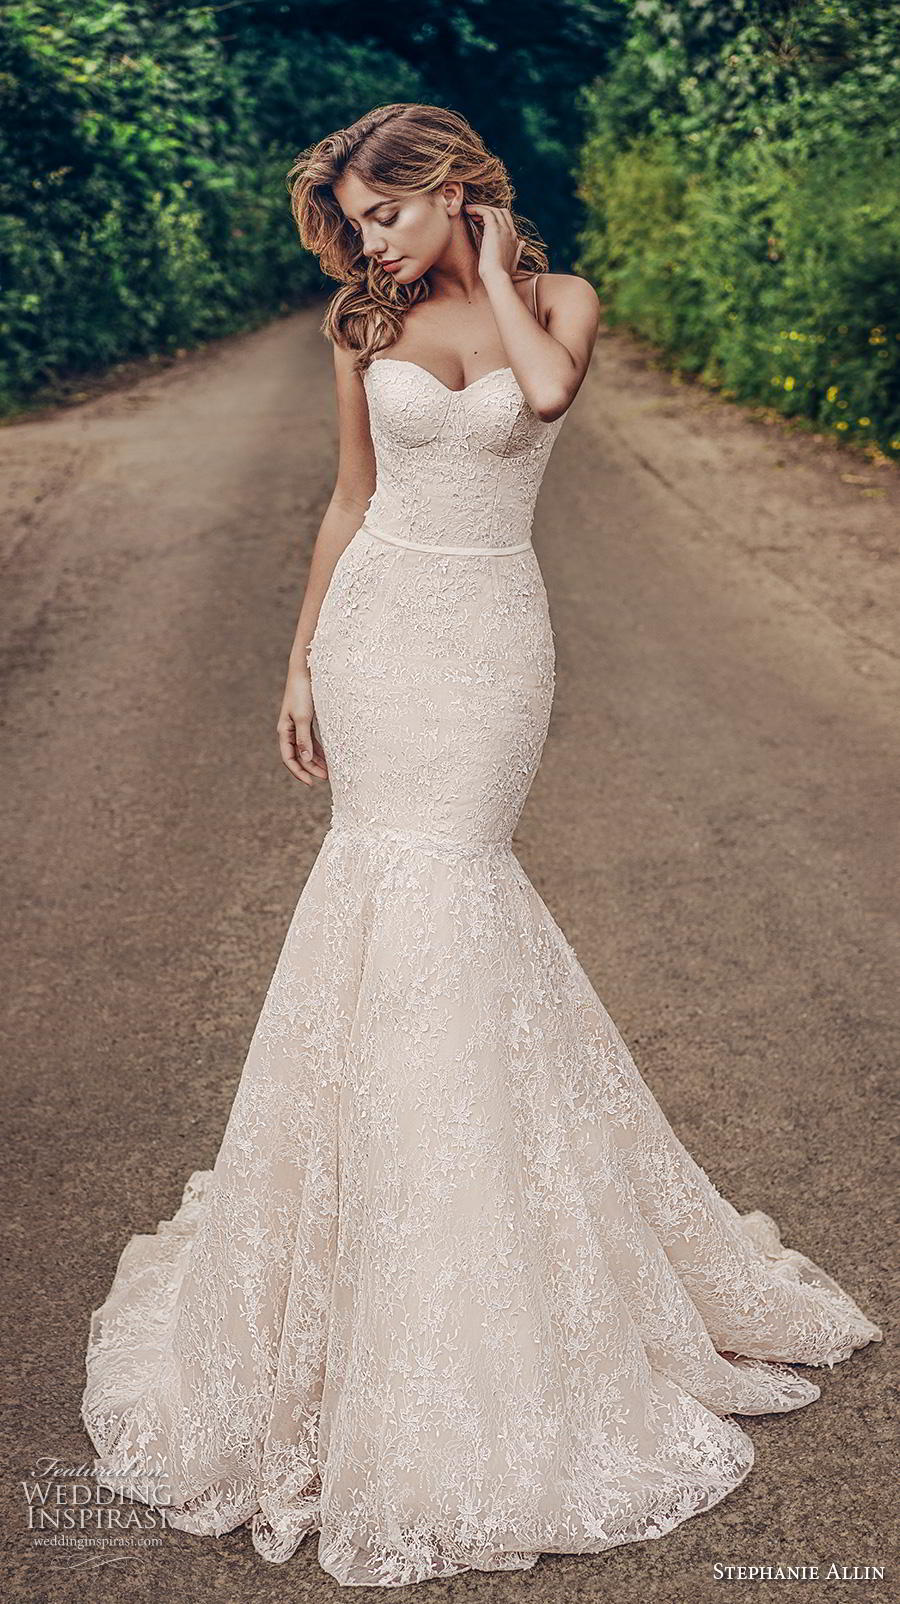 stephanie allin 2019 bridal sleeveless spaghetti strap sweetheart neckline full embellishment bustier sexy elegant blush mermaid wedding dress mid back chapel train (7) mv